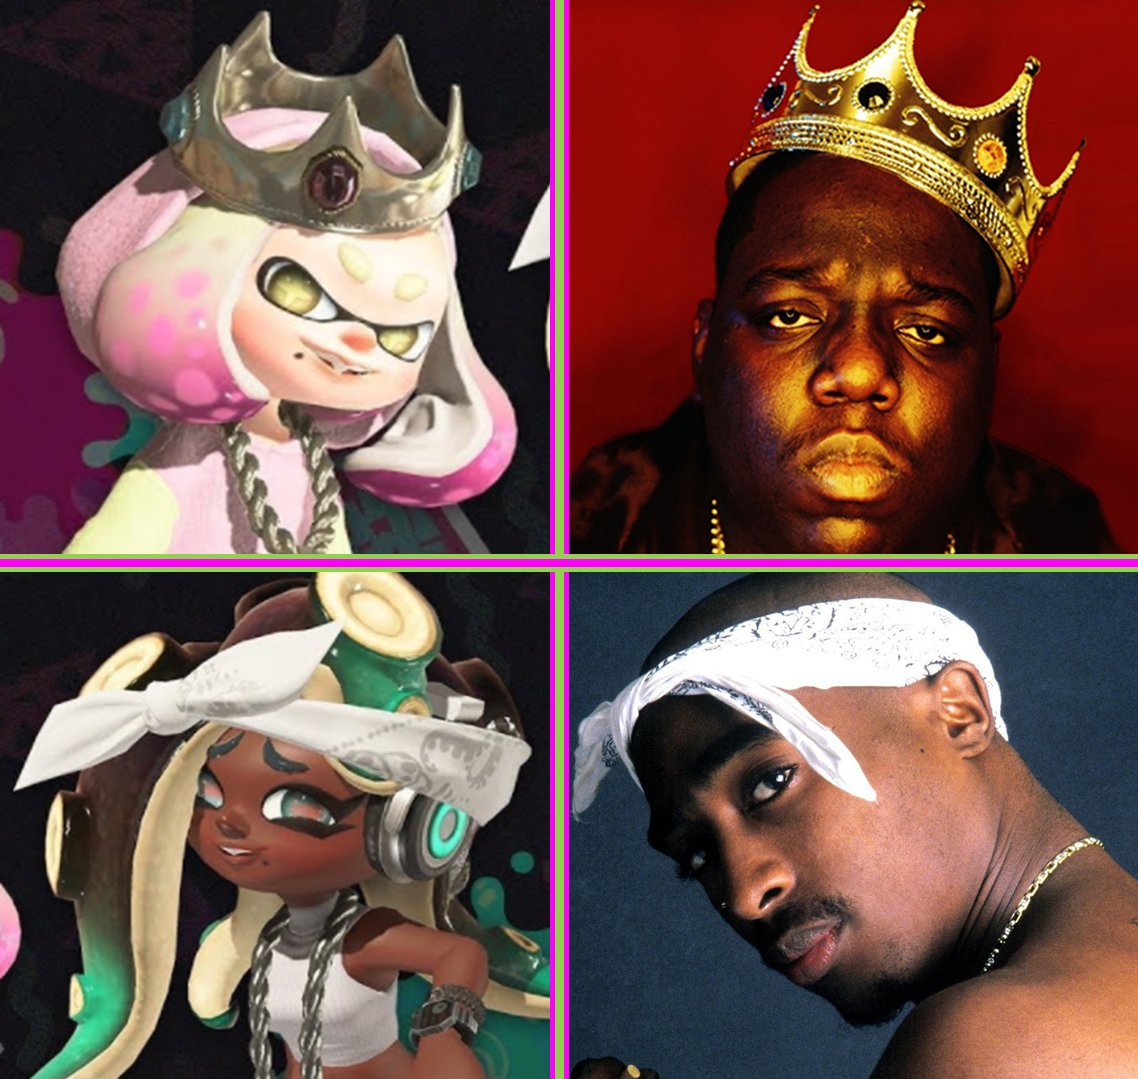 DAILY NINTENDO FACT #197   The designs of Pearl and Marina from the Octo Expansions are a reference to the real American rappers Notorious B.I.G. and Tupac Shakur, respectively, as both wear the same distinctive accesory on their heads. <br>http://pic.twitter.com/fm8TuLJoTP